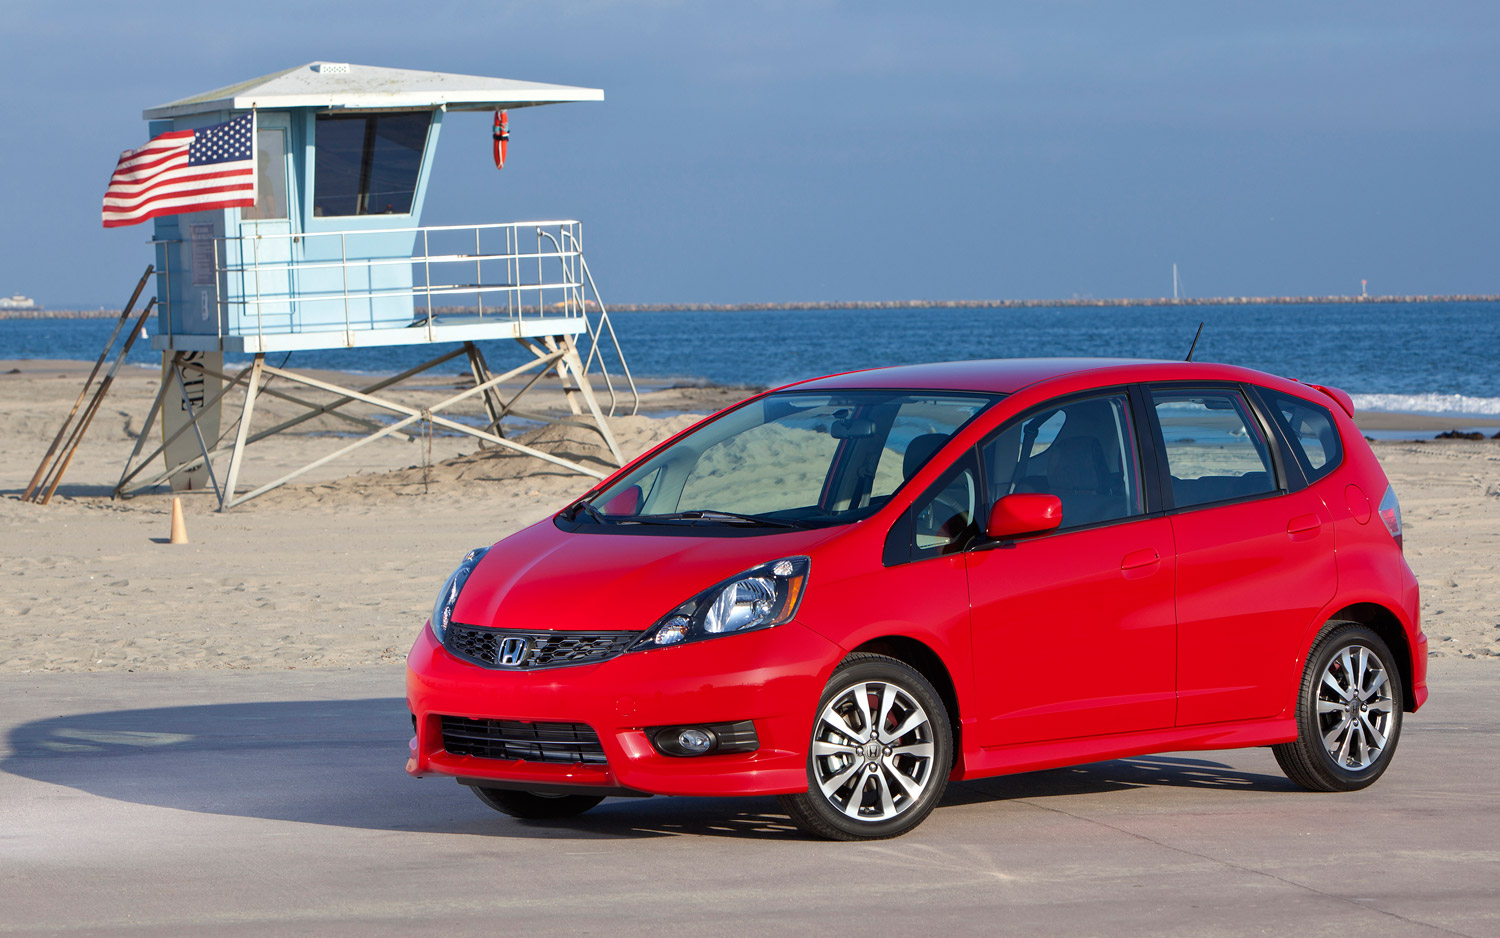 2013 honda fit red 200 interior and exterior images for 2013 honda fit base